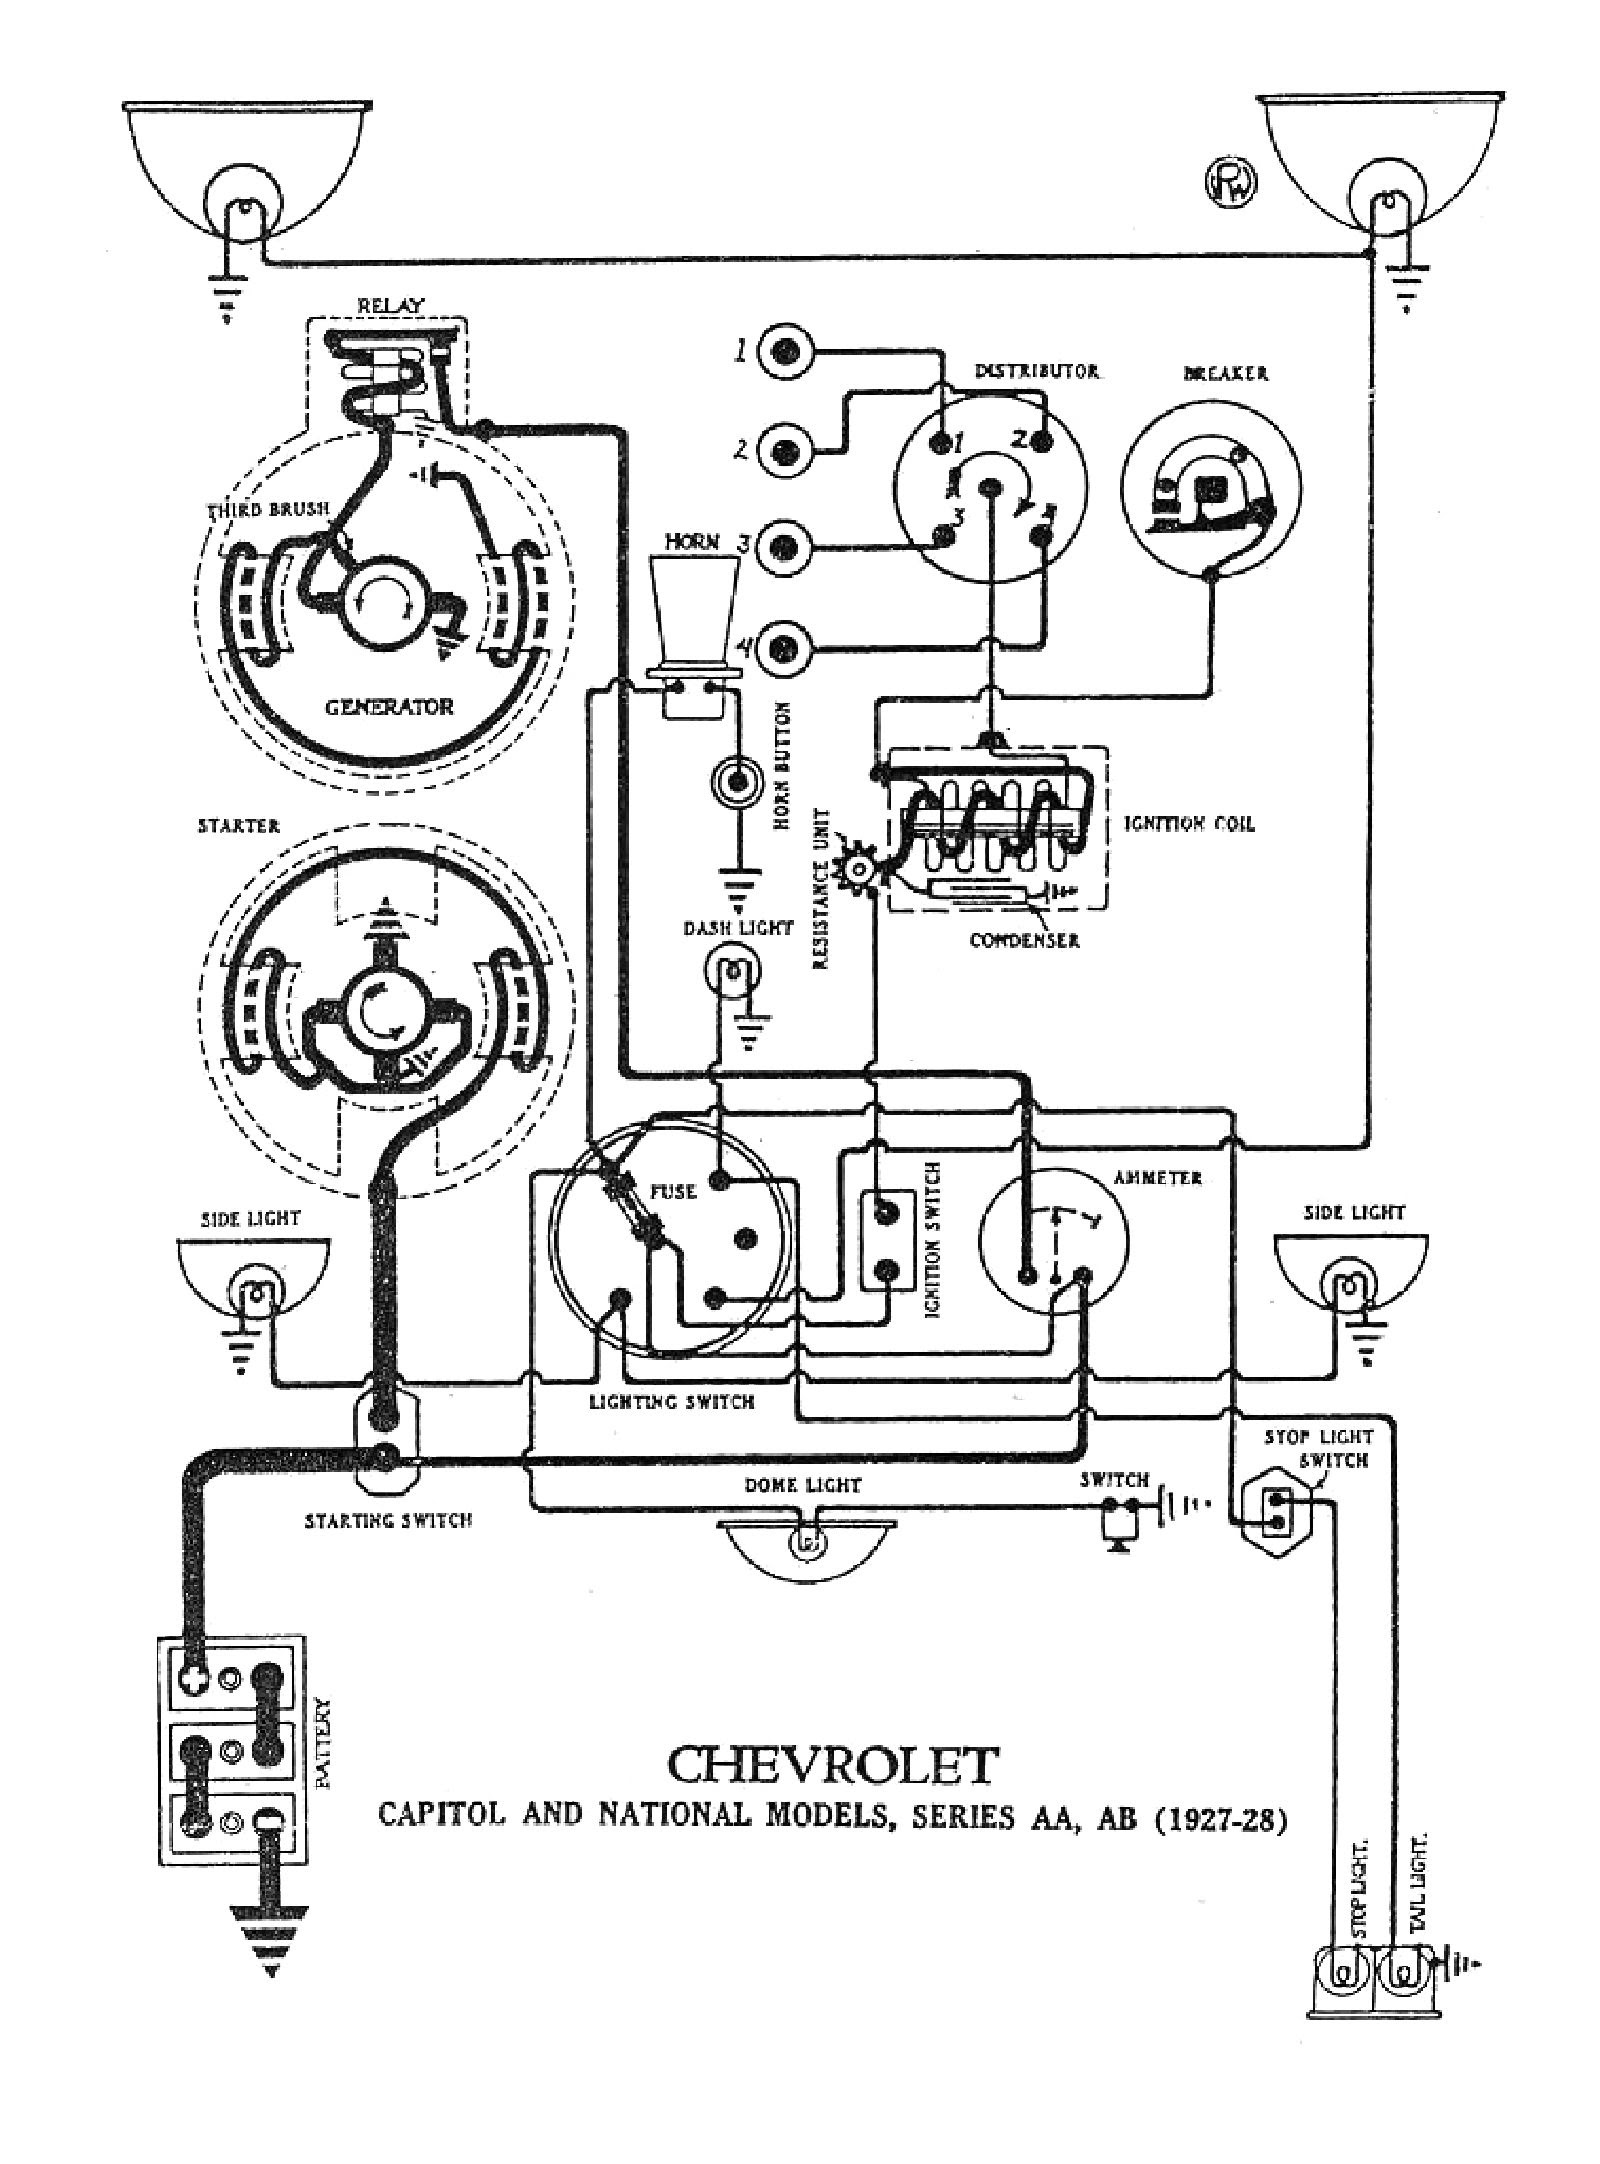 1972 Corvette Ignition Coil Wiring Diagram Basic Wiring Diagram Multimedia Multimedia Wallabyviaggi It